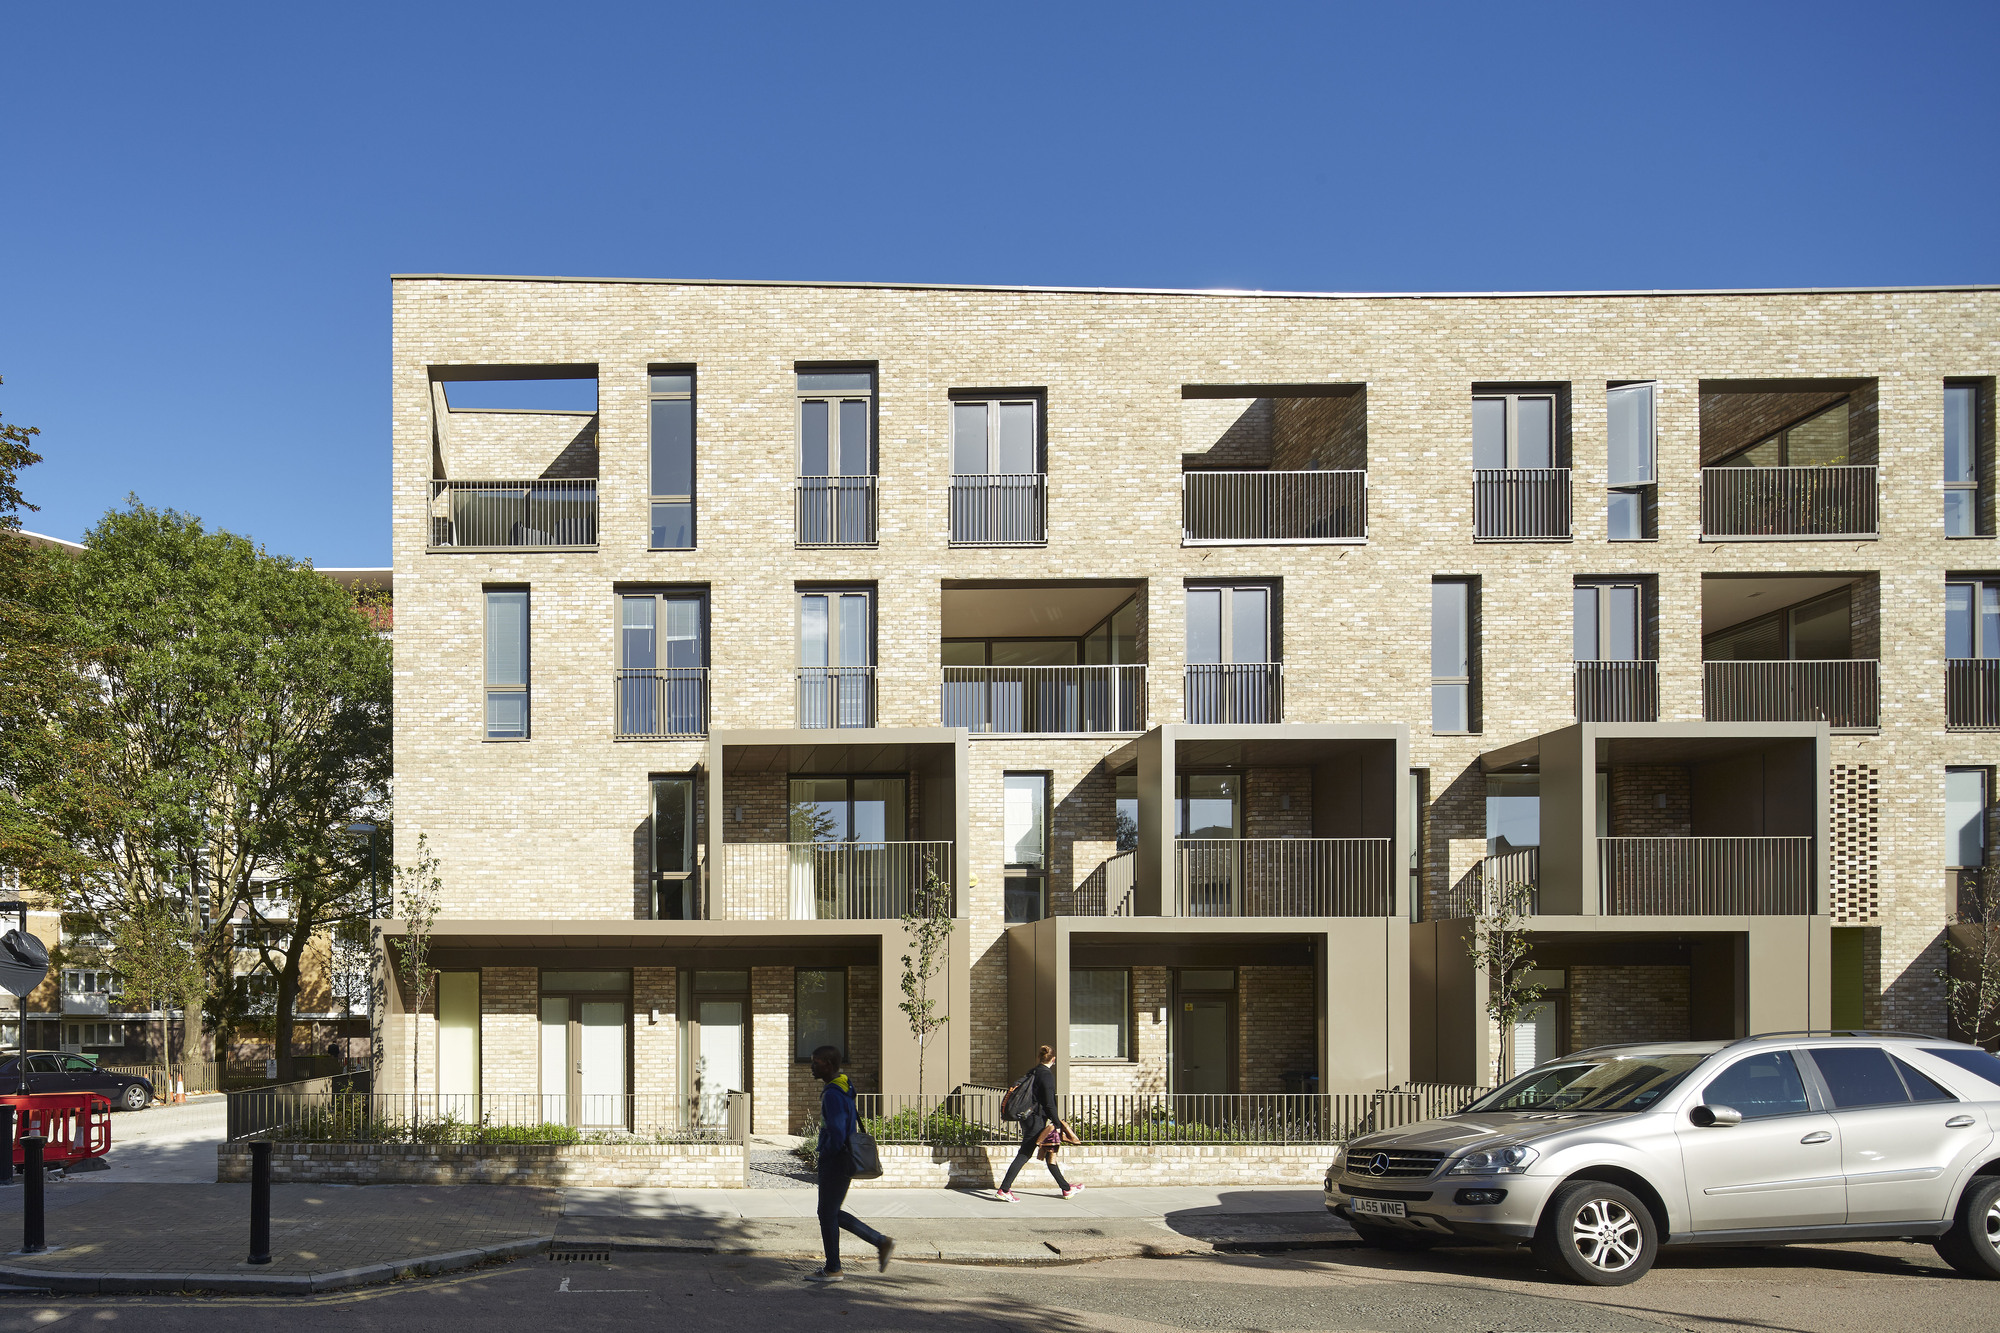 Ely court alison brooks architects archdaily for Cout plan architecte